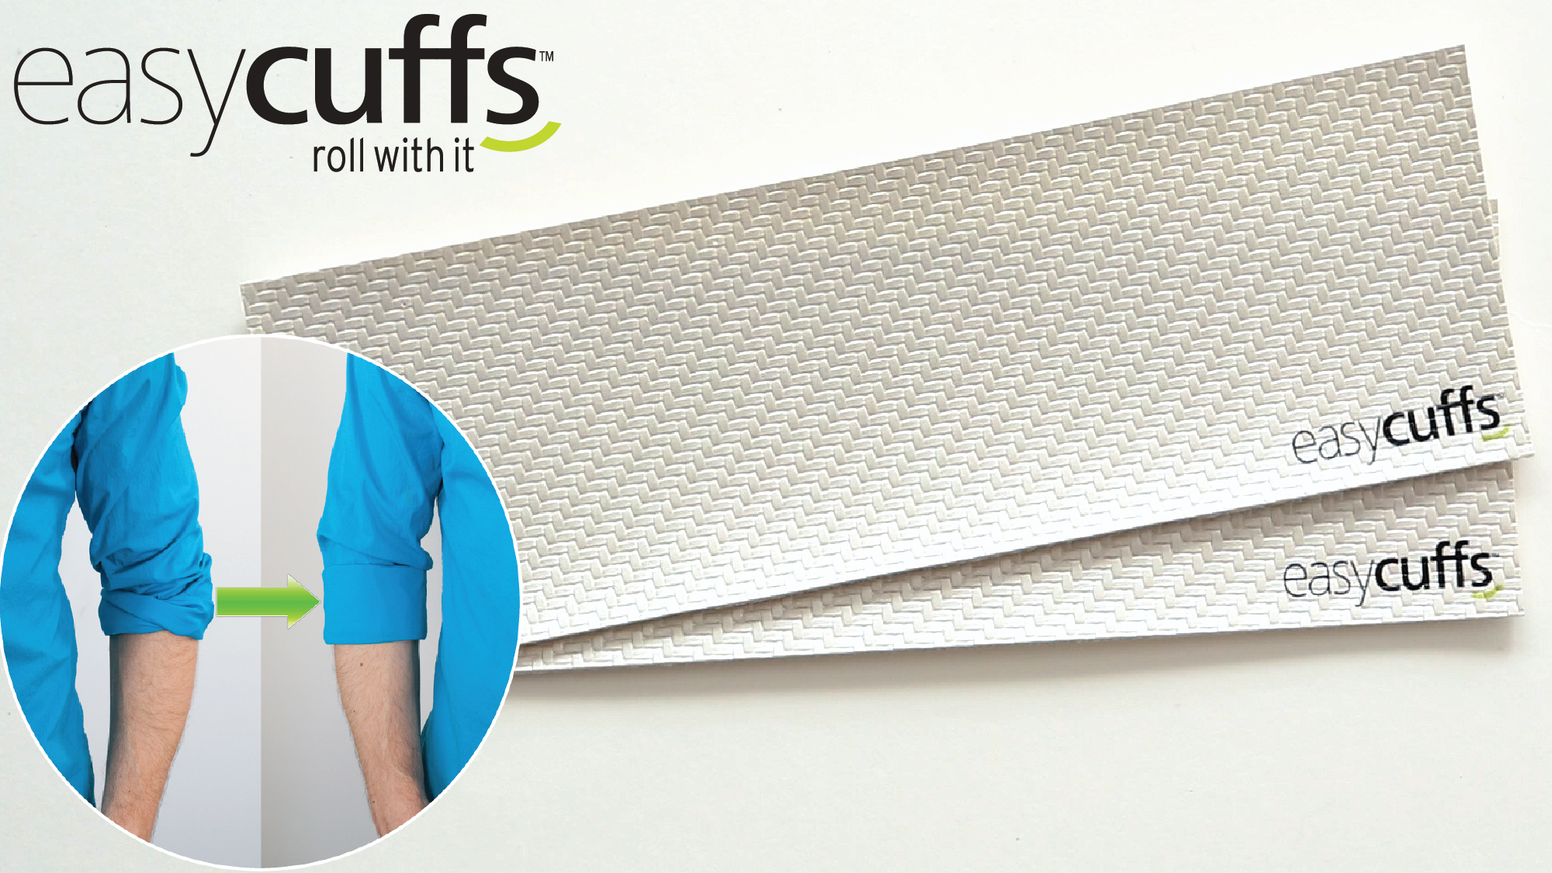 Use easycuffs to roll up the perfect shirt cuff on the first try, every time for a crisp, clean look that stays in place all day.